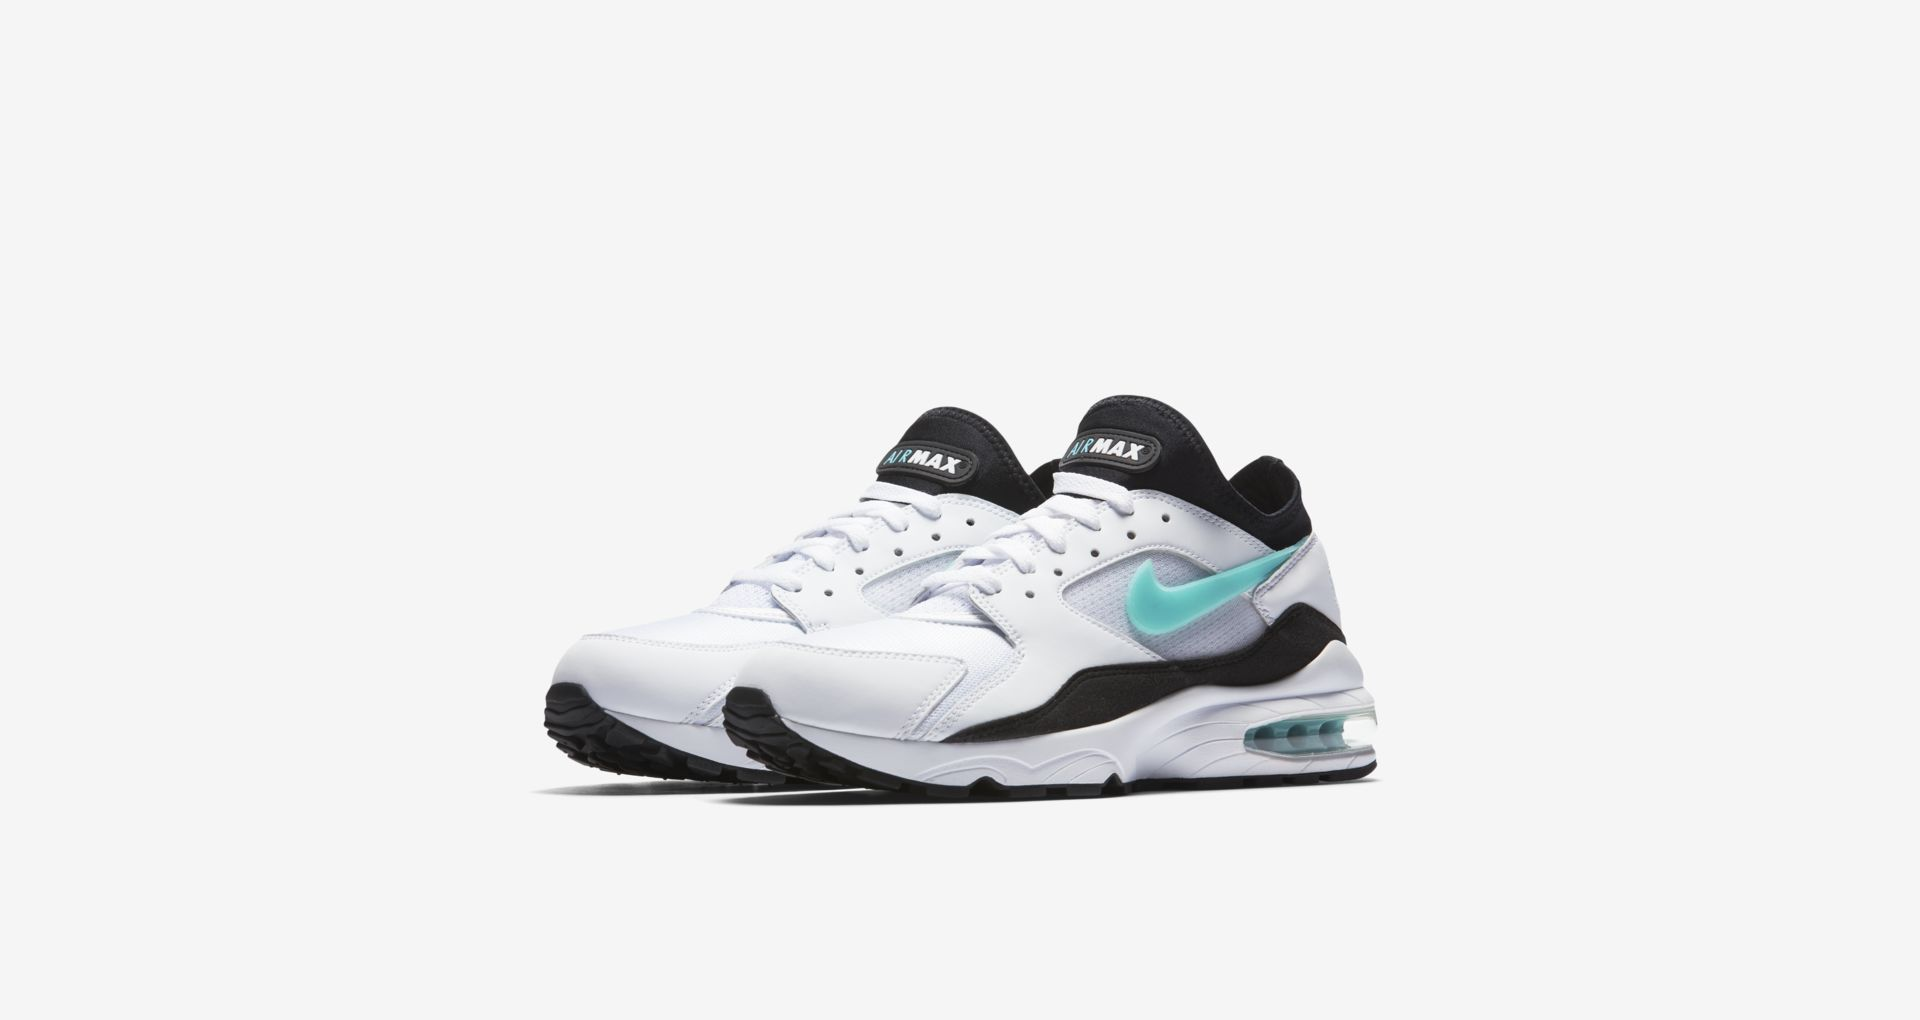 nike air max white sport turquoise release date nikeu2060+ snkrs